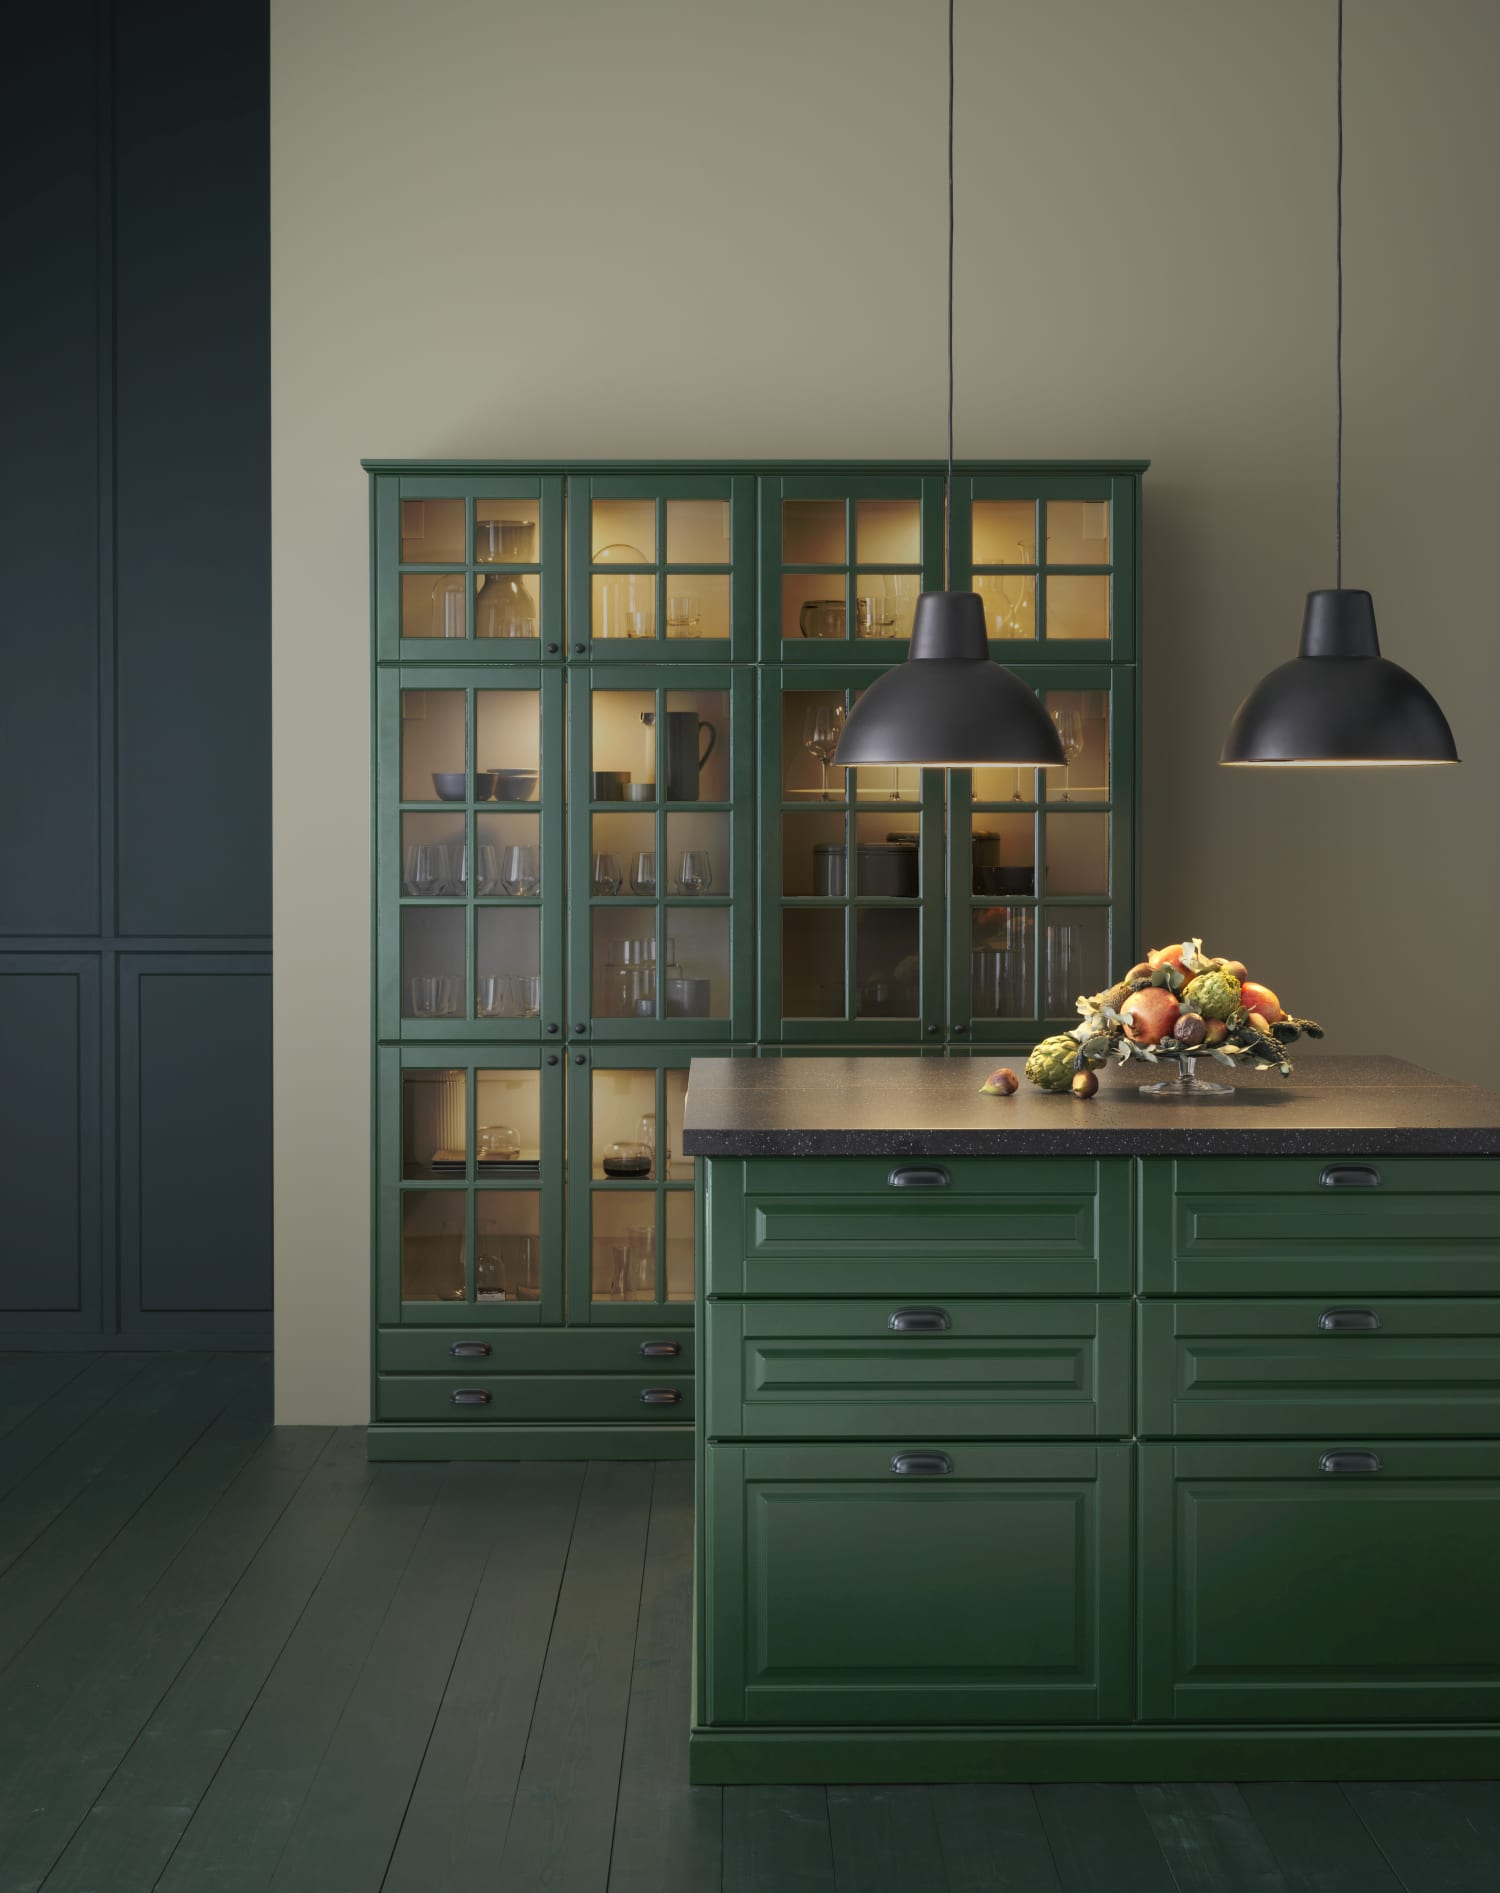 8 Home and Kitchen Trends That Will Be Huge in 2020, According to the IKEA Catalog